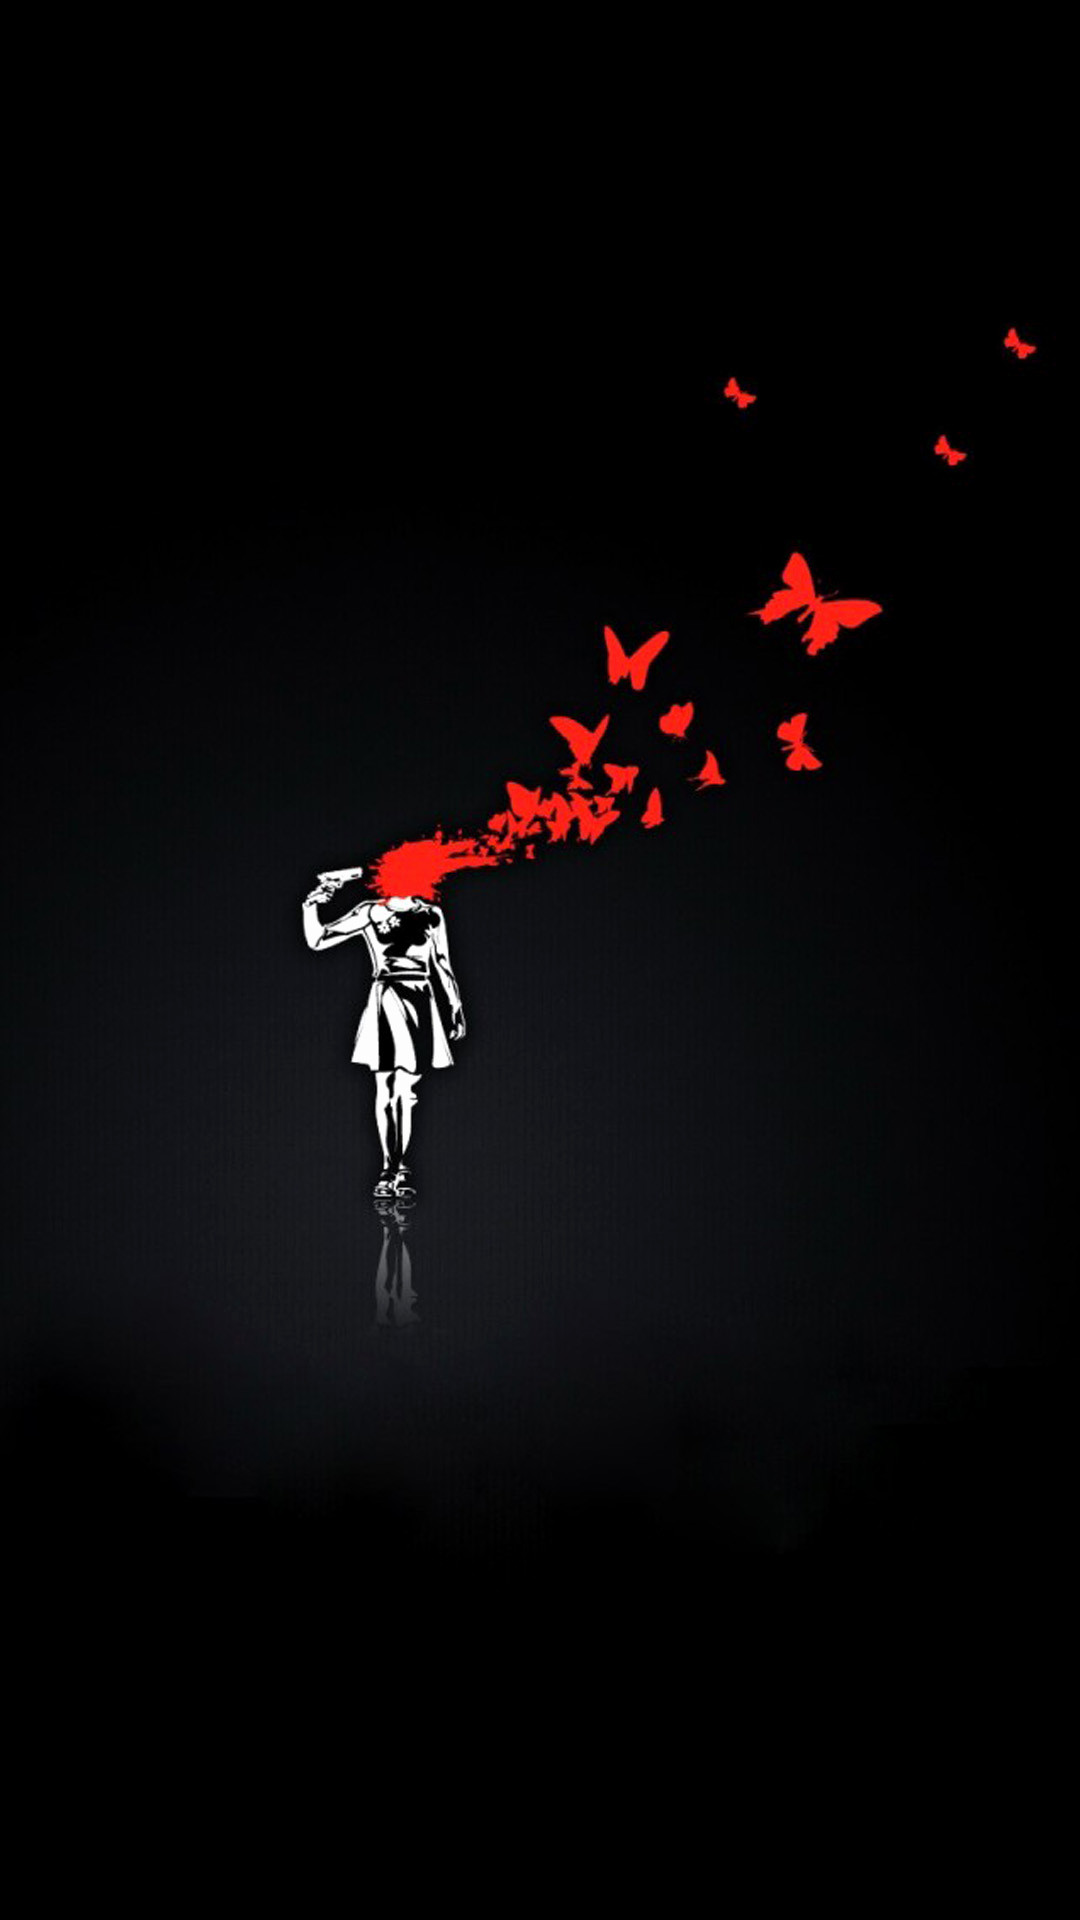 1080x1920, Funny Iphone Wallpapers Lovely Funny Iphone - Broken Heart Black Background - HD Wallpaper